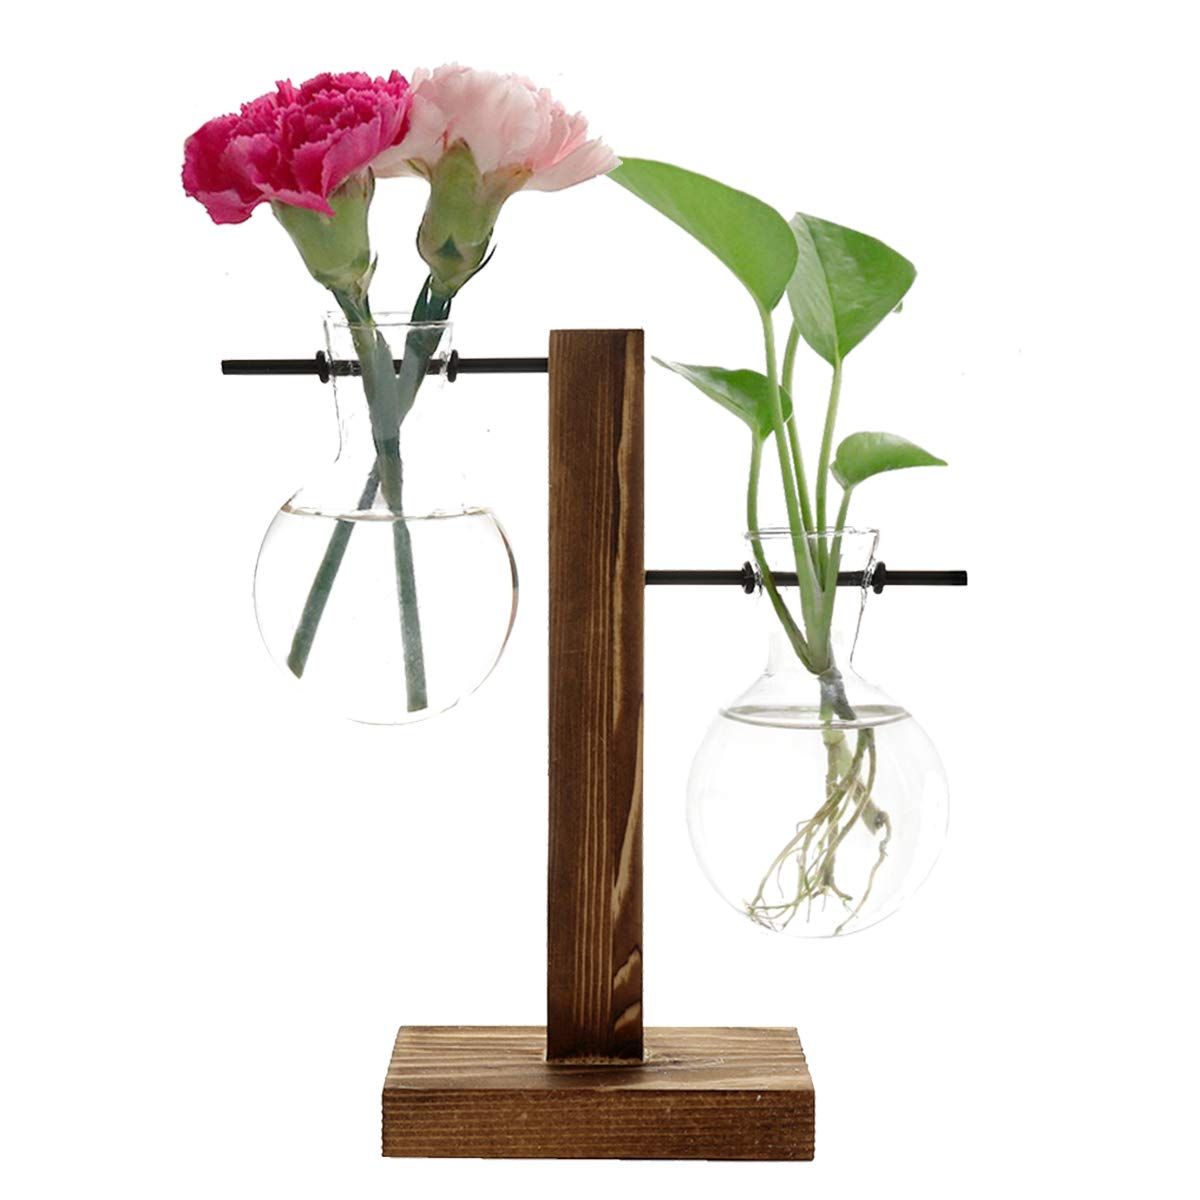 Feitore Glass Planter Bulb Vase, Desktop Plant Terrarium with Retro Solid Wooden Stand and Metal Swivel Holder for Hydroponics Plants Home Garden Office Wedding Decor – 2 Bulb Vase